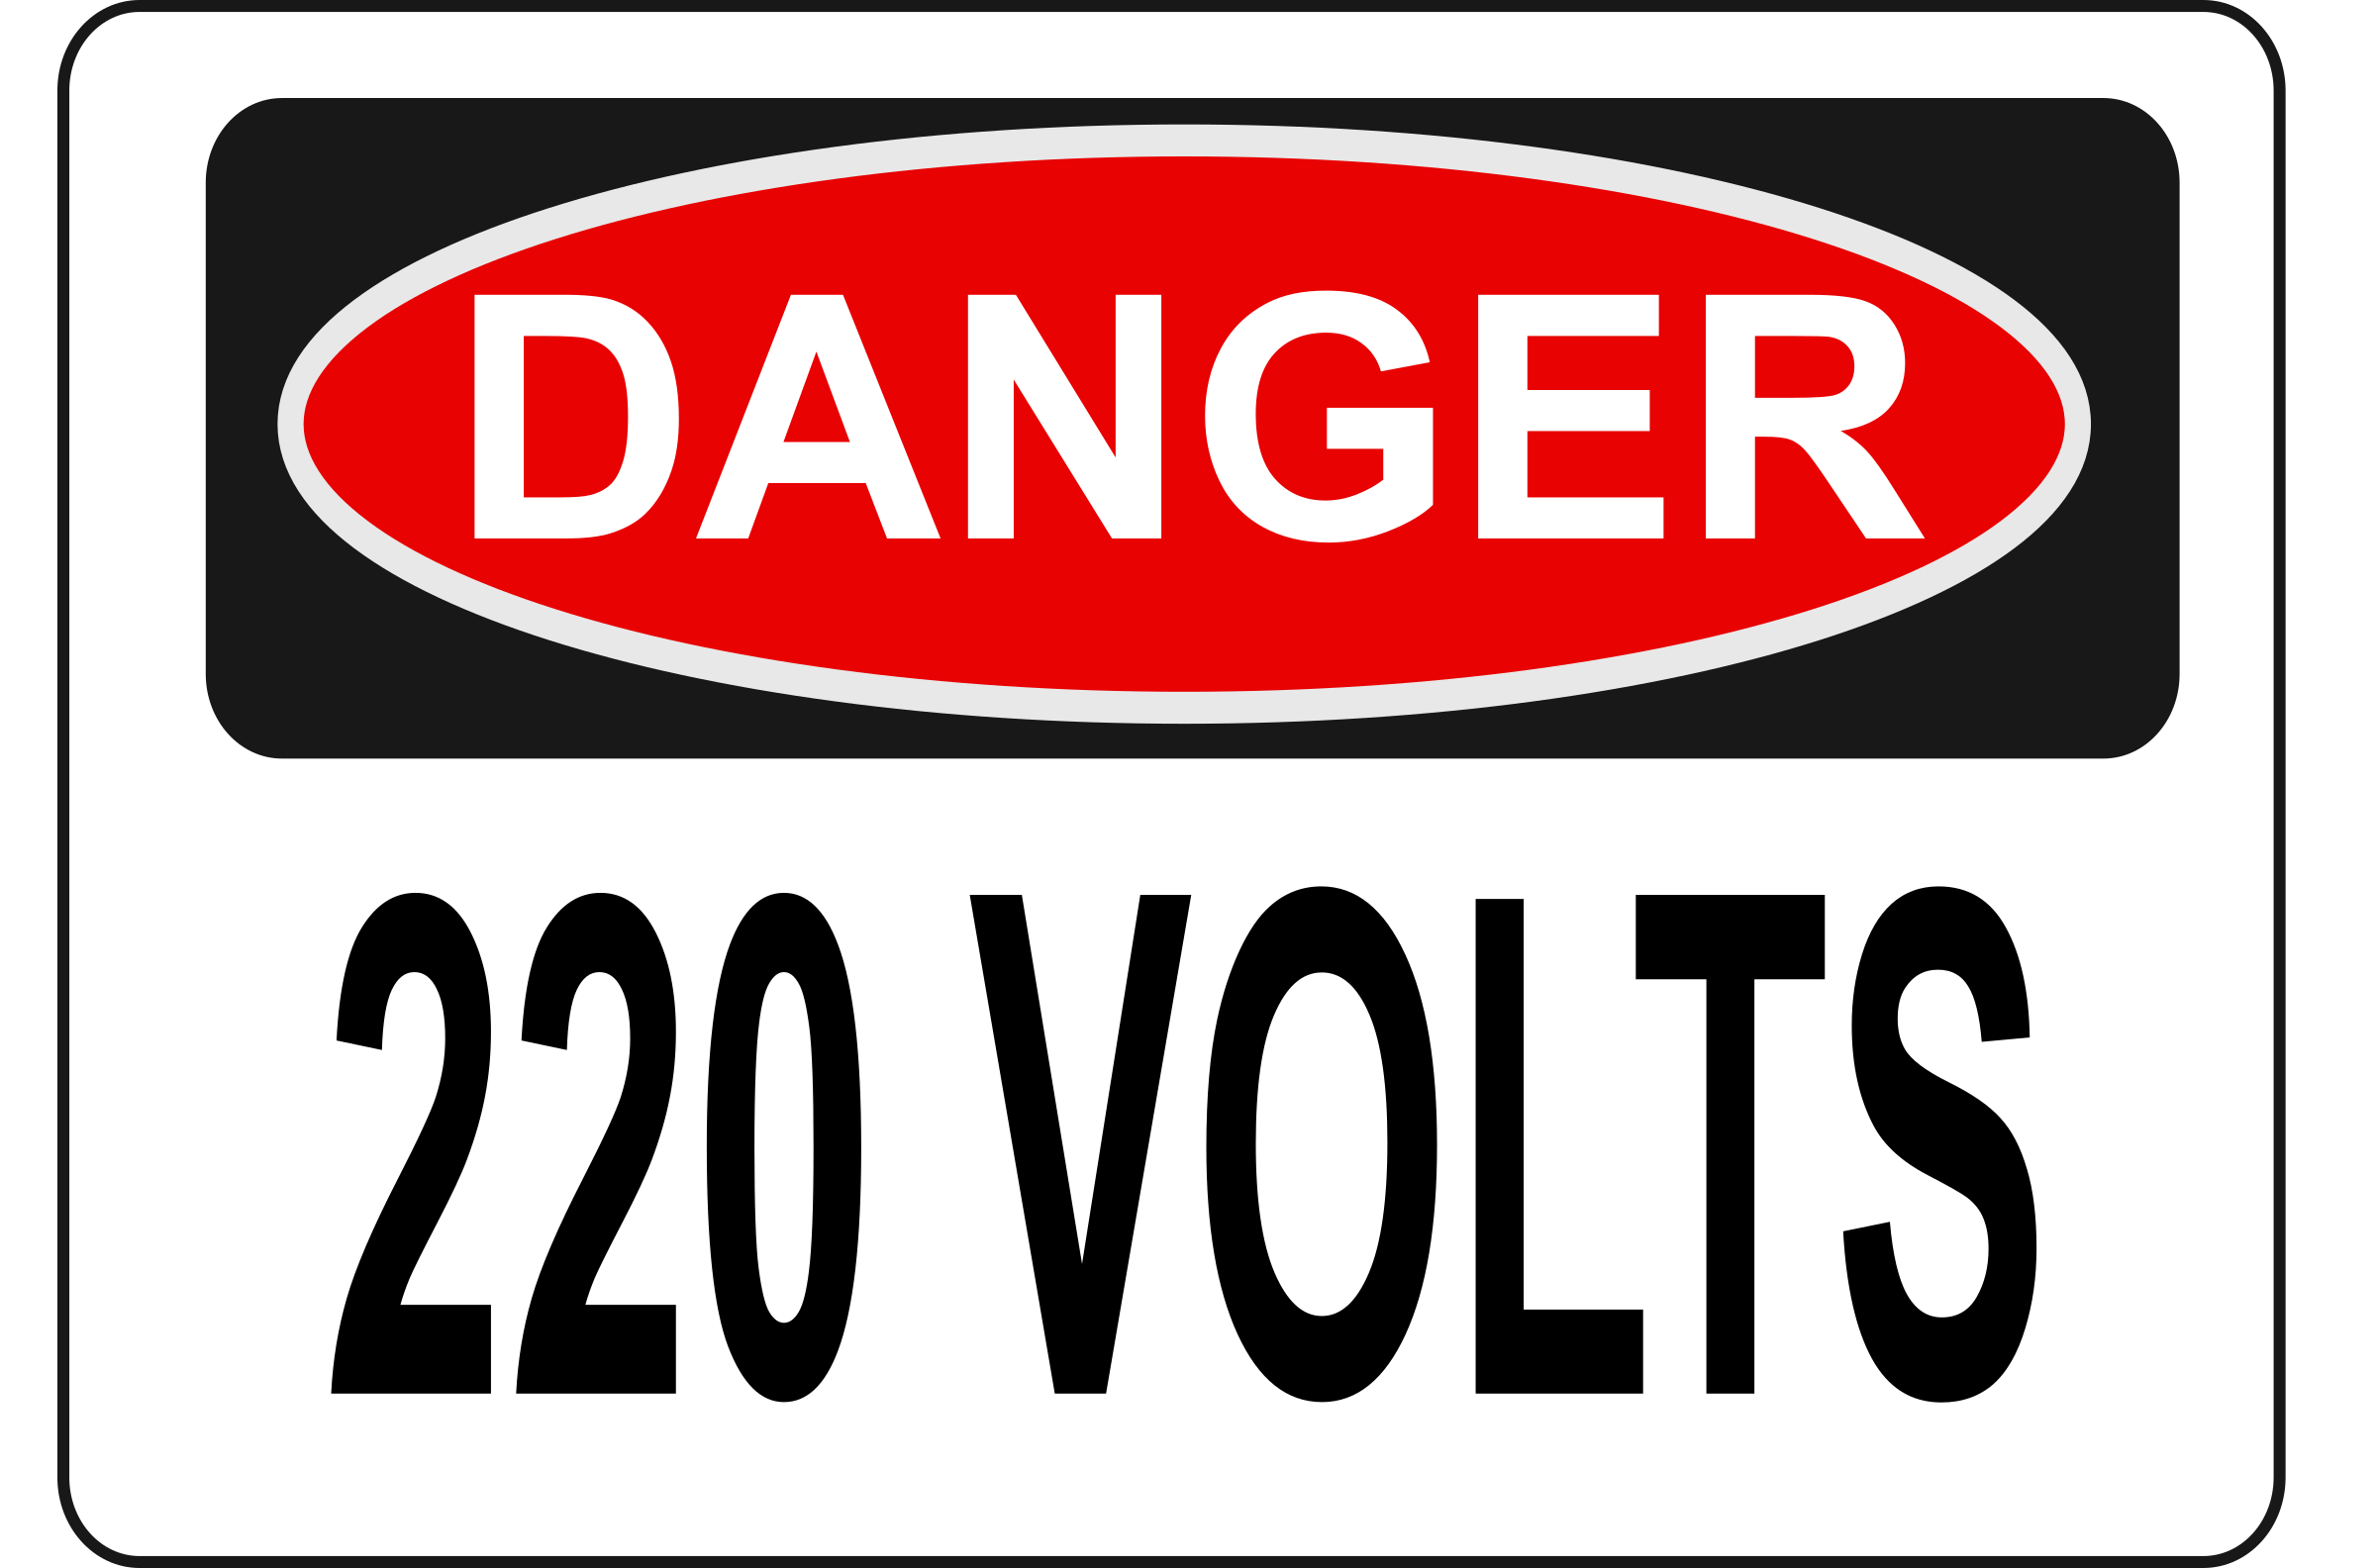 Danger - 220 Volts by Rfc1394